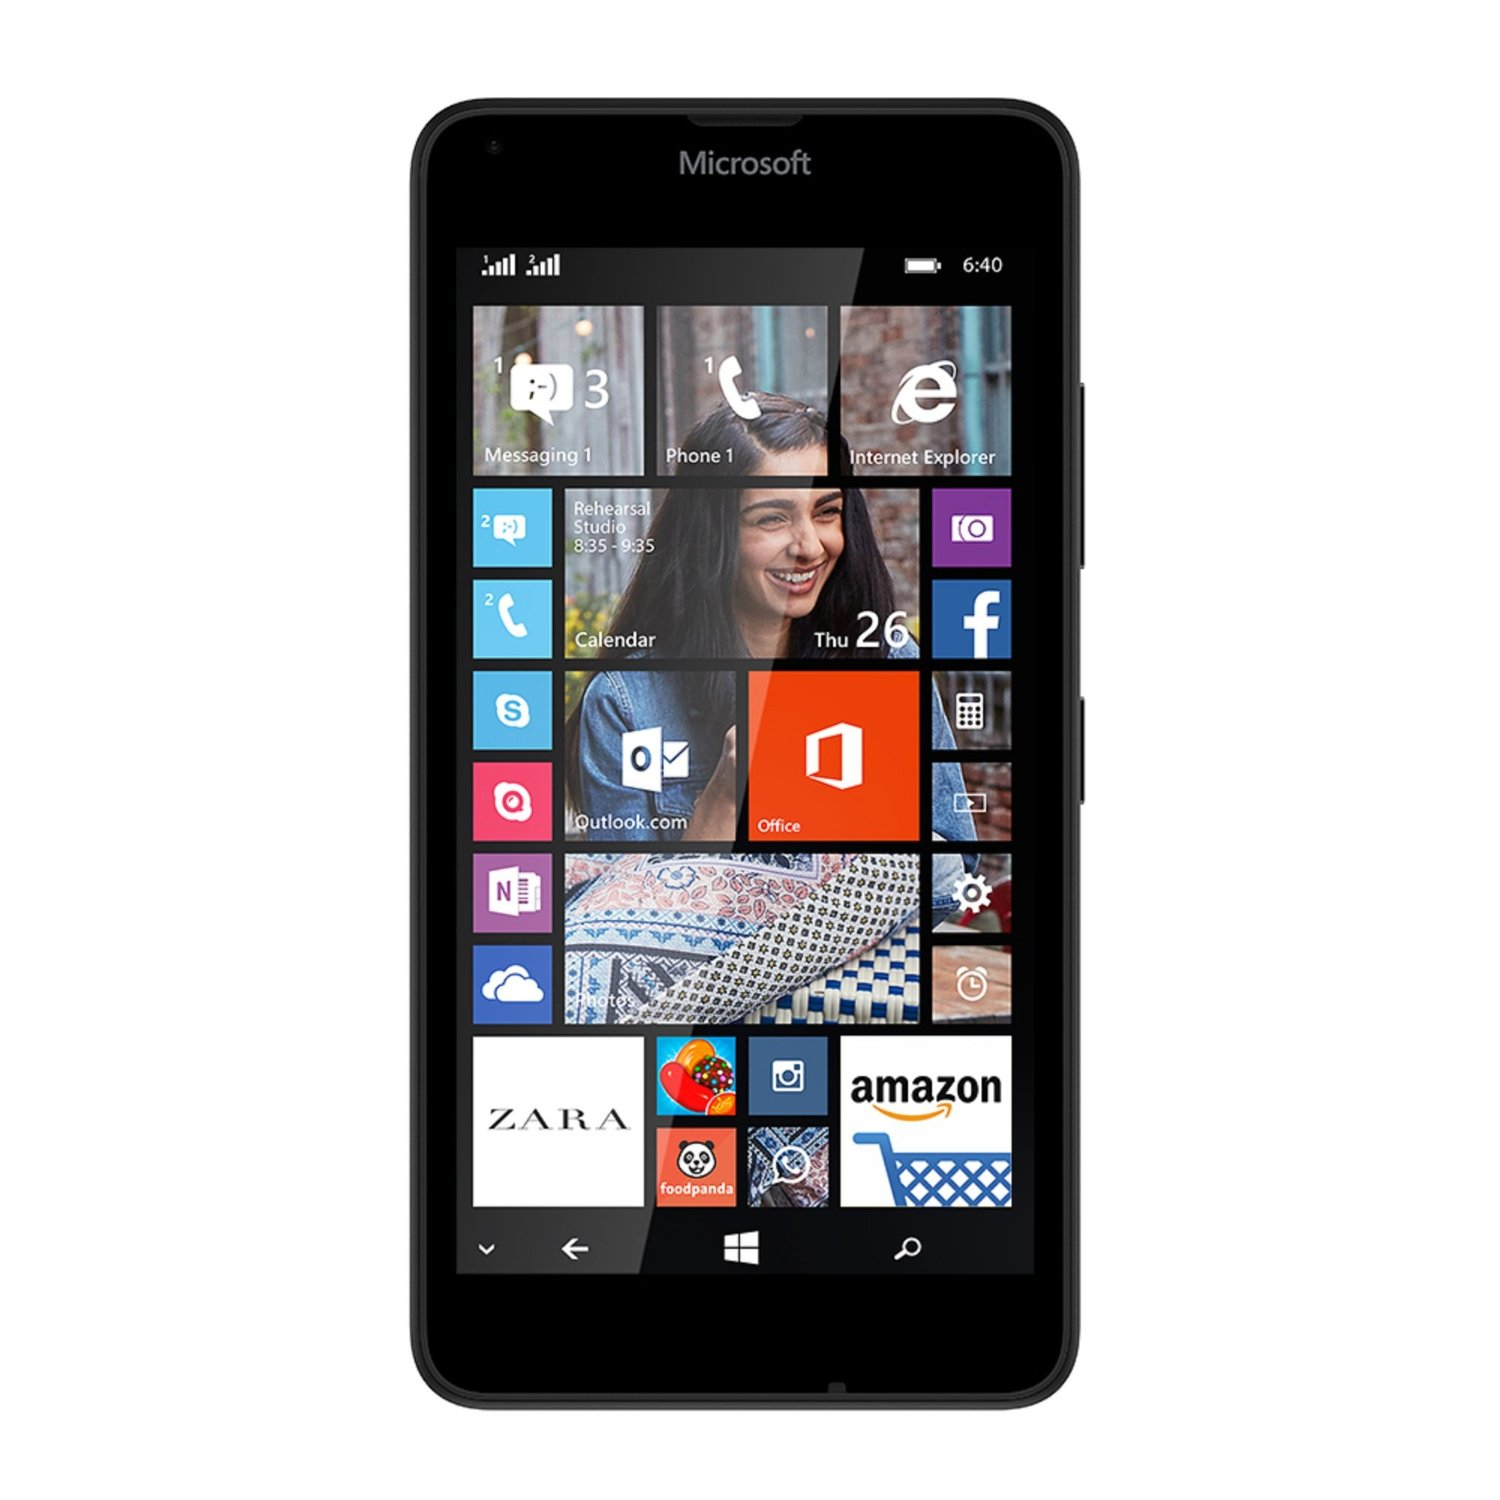 Microsoft Lumia 640 Dual Sim Photos Images And Wallpapers